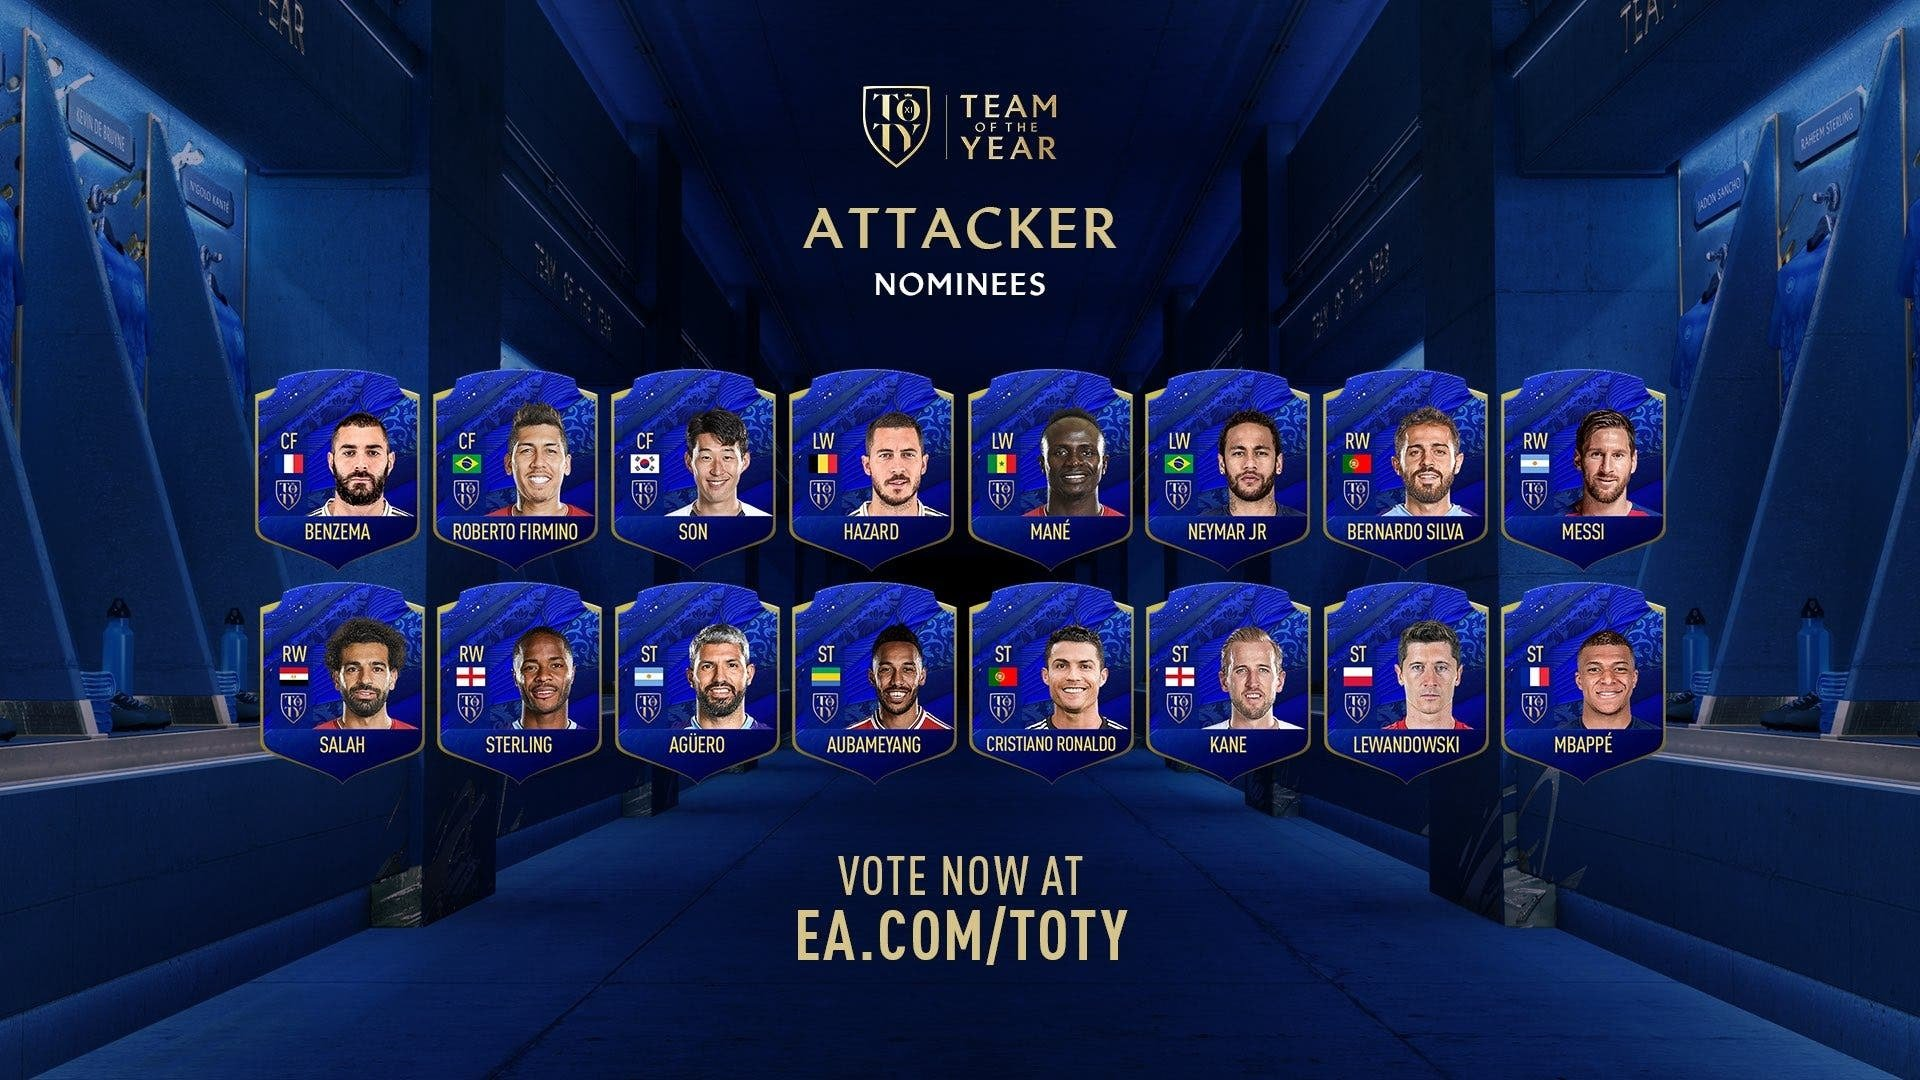 The cards for the TOTY nominees were barely a point better than the average and overall stats.